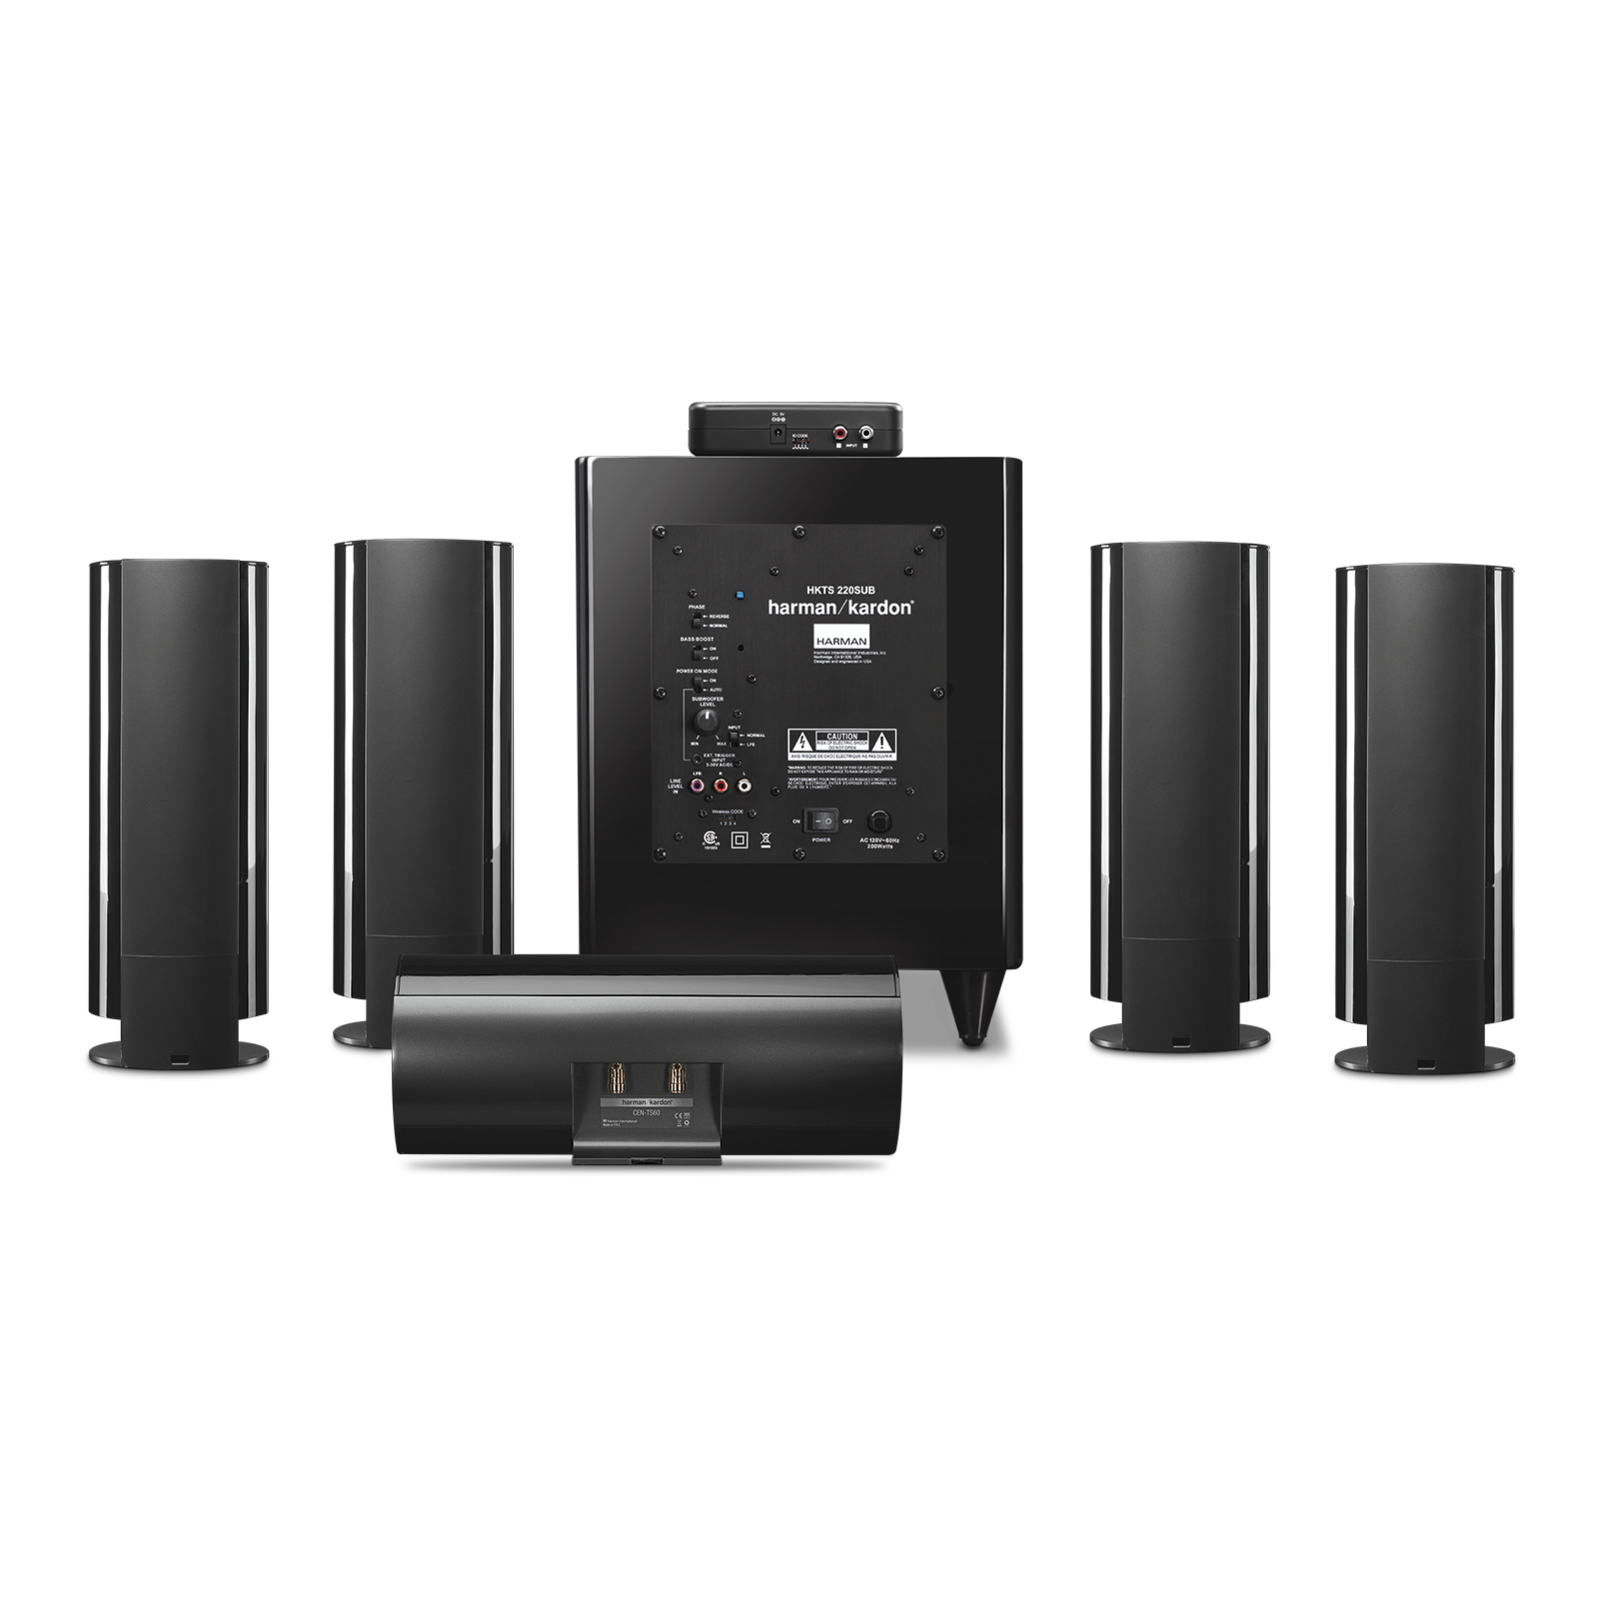 Hkts 65 A 5 1 Channel Home Theater Speaker System With